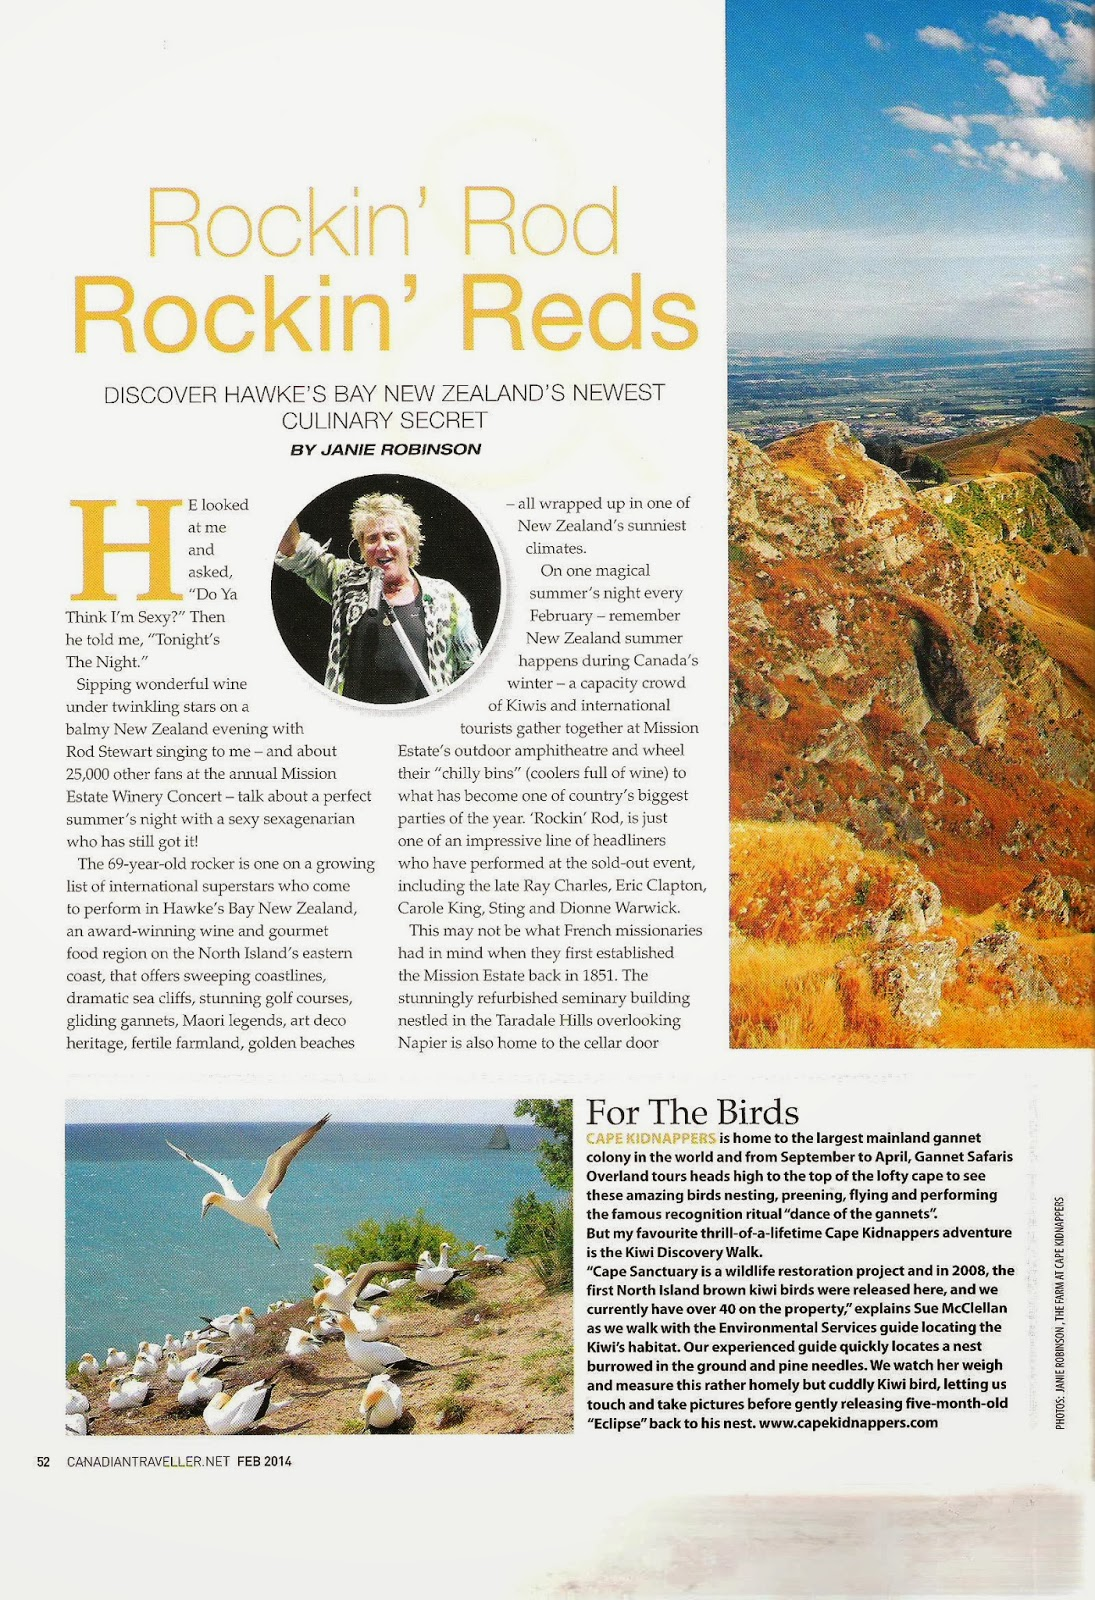 Hawke's Bay New Zealand. Photographs by Janie Robinson, Travel Writer